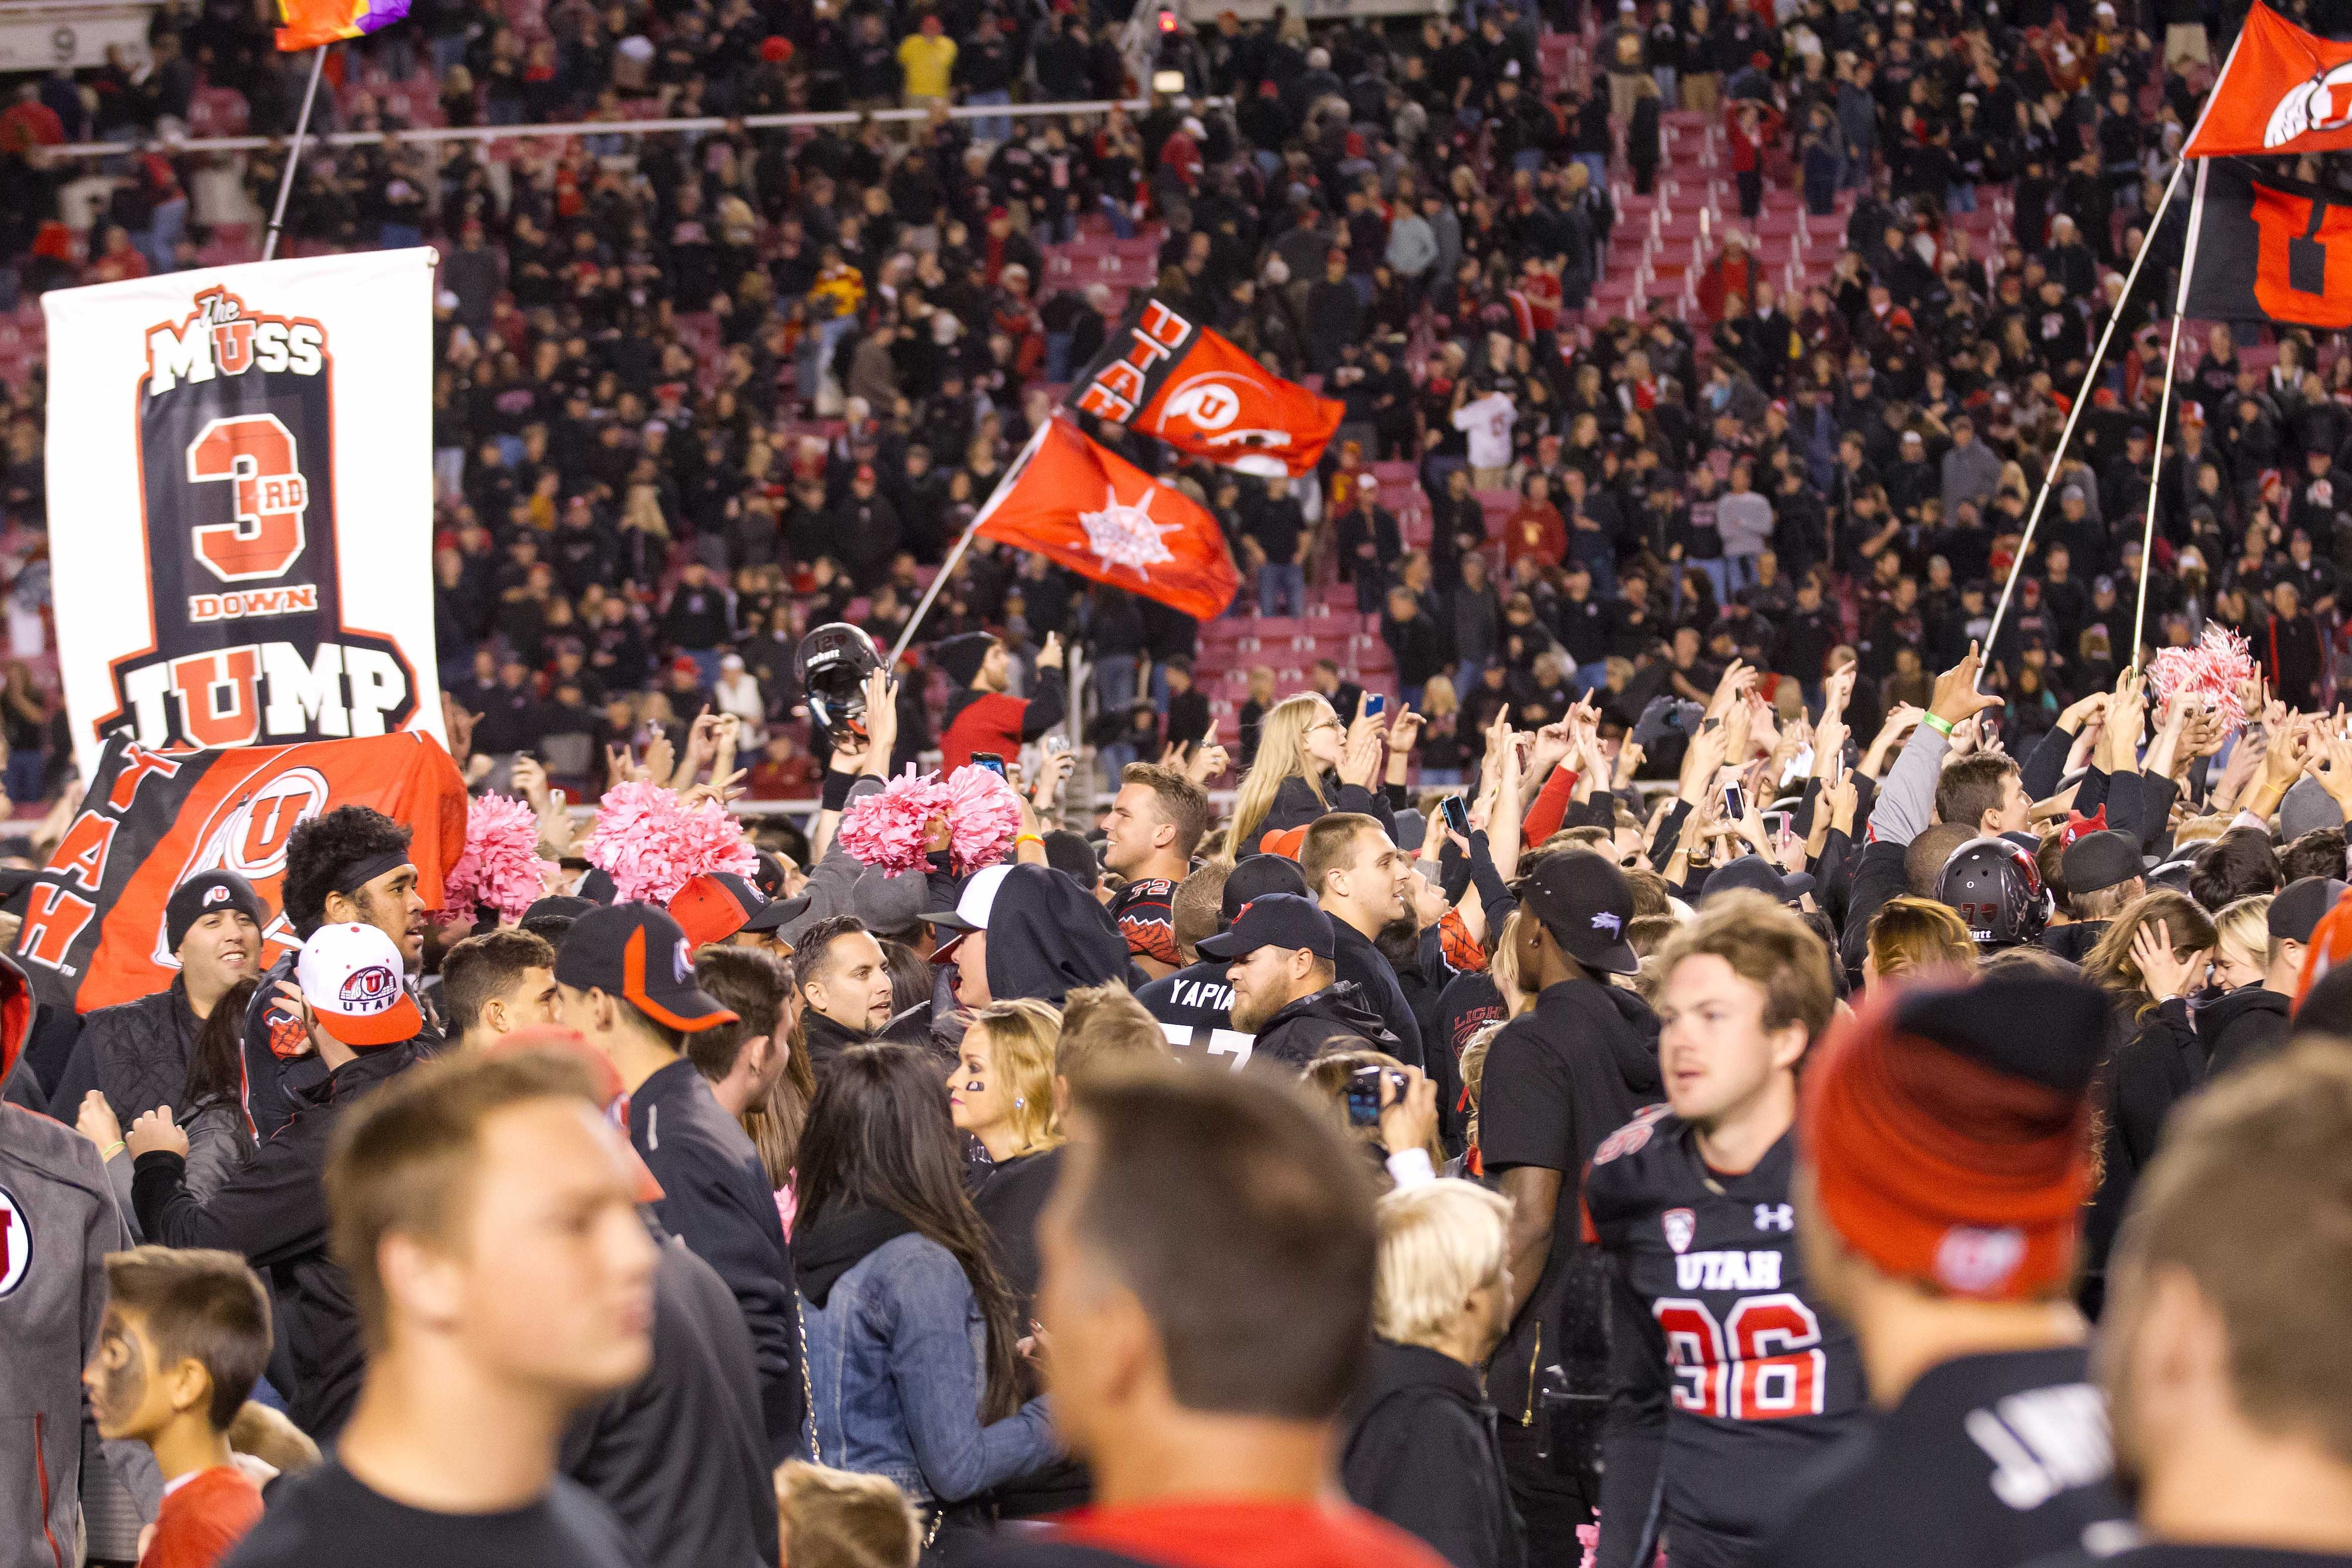 Utah's Fans Celebrated Wildly After Topping USC For The First Time Since Joining The Pac-12